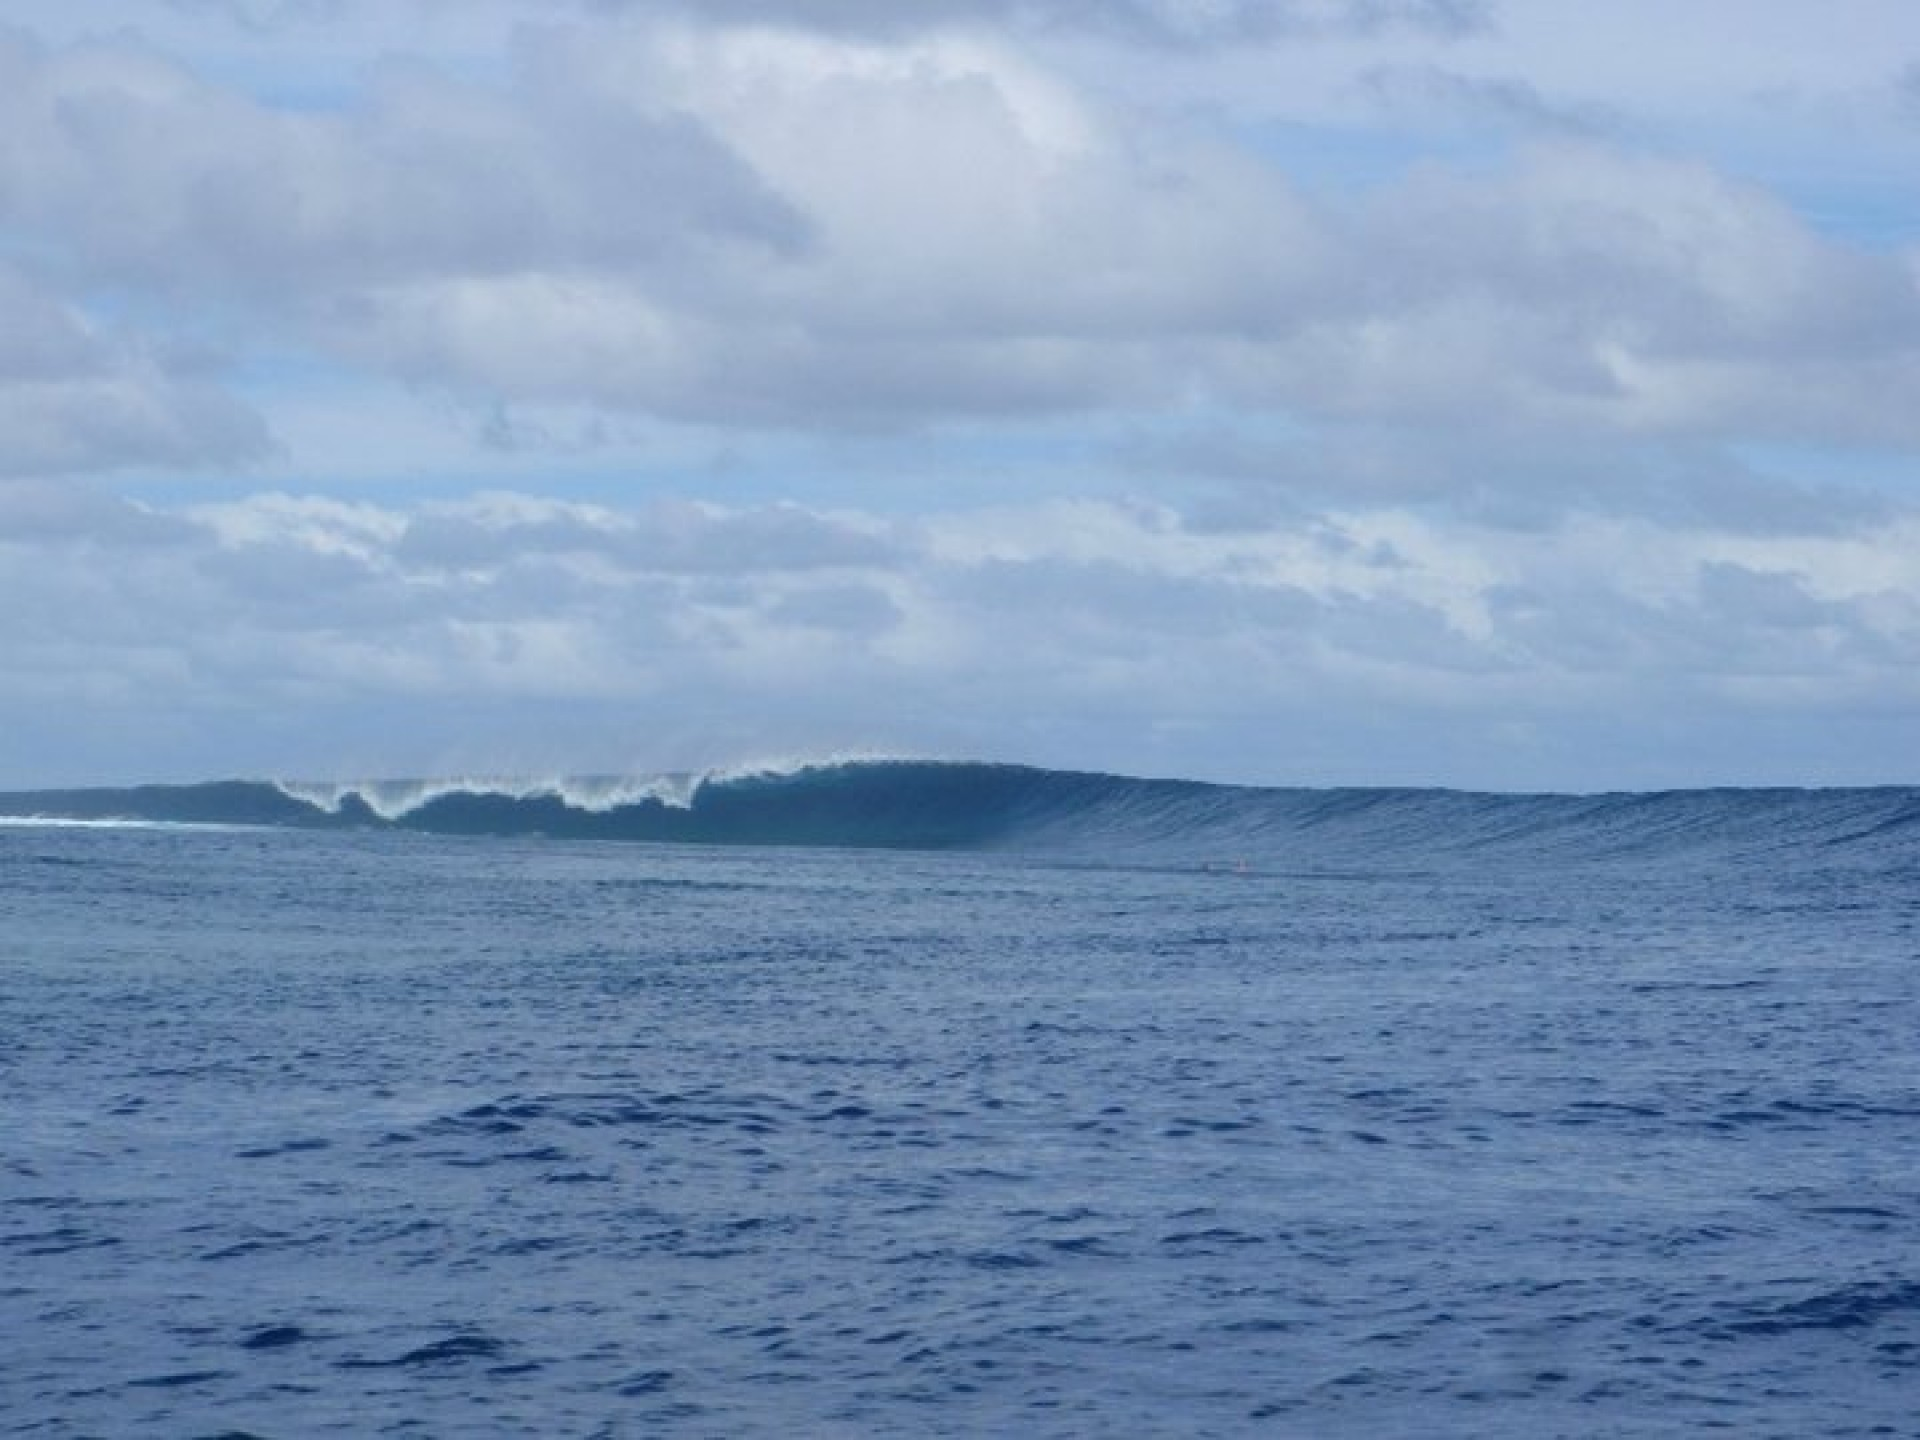 Melbch1!'s photo of Tavarua - Cloudbreak